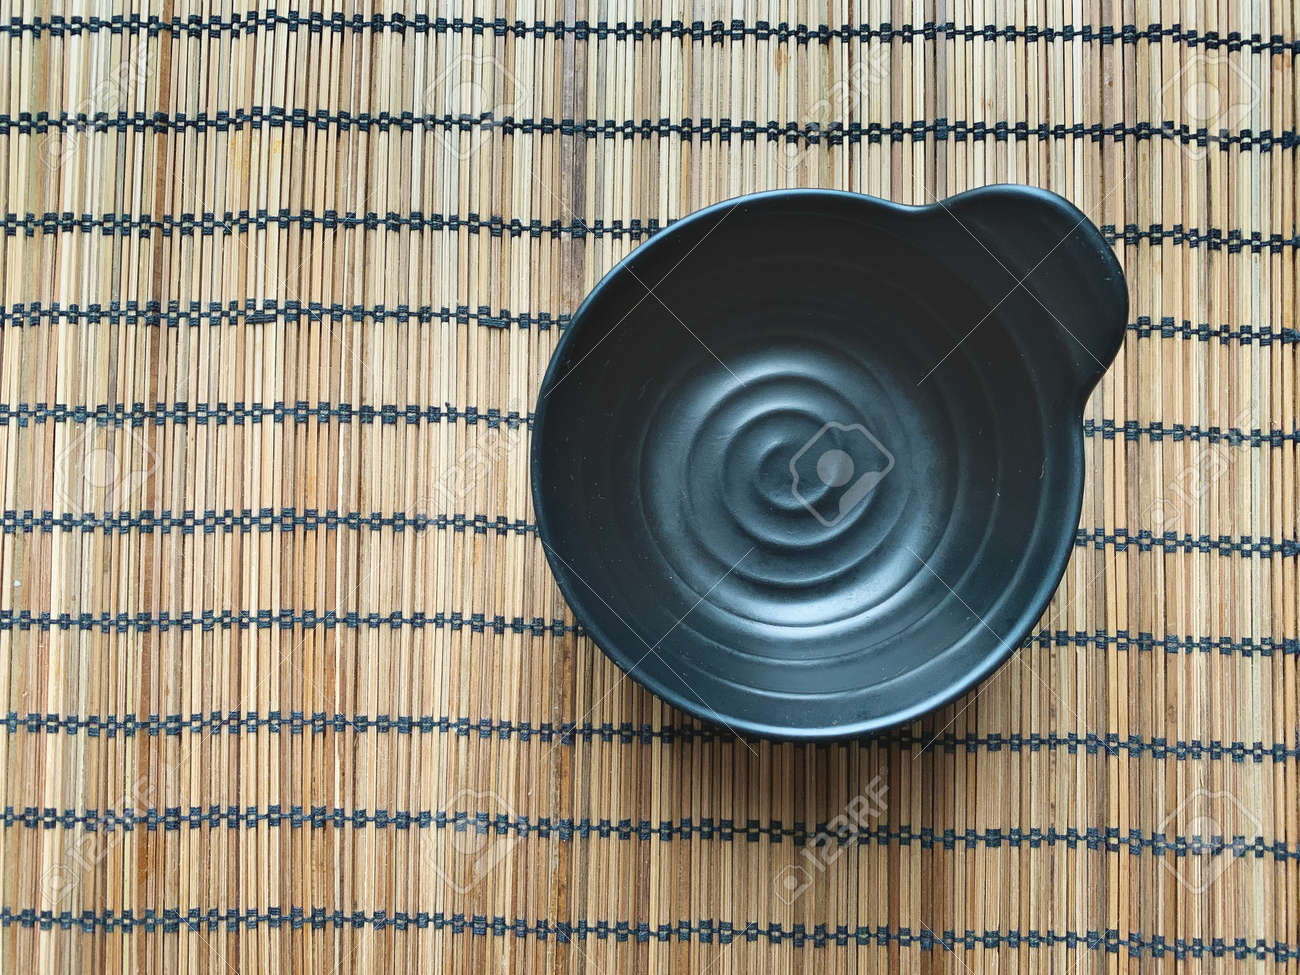 Wooden napkin with black cup. View from above. - 169603139